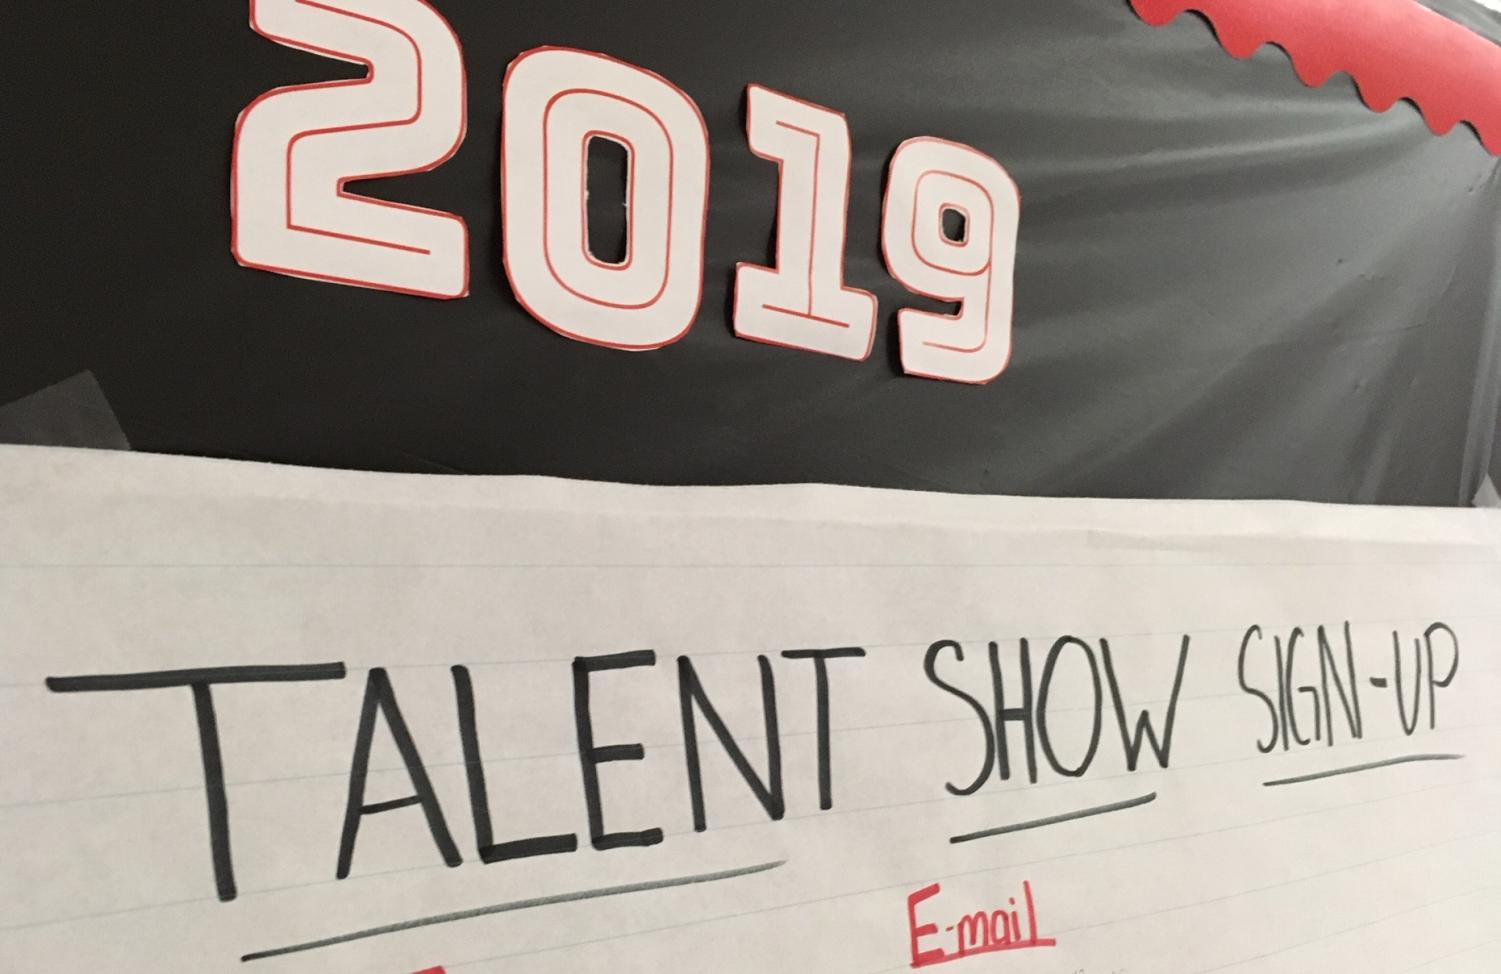 The WHS Talent Show will be held Thursday, Jan. 10, in the Watertown High auditorium beginning at 6 p.m. Tickets will be available at the door, with the money raised going to the Class of 2019.